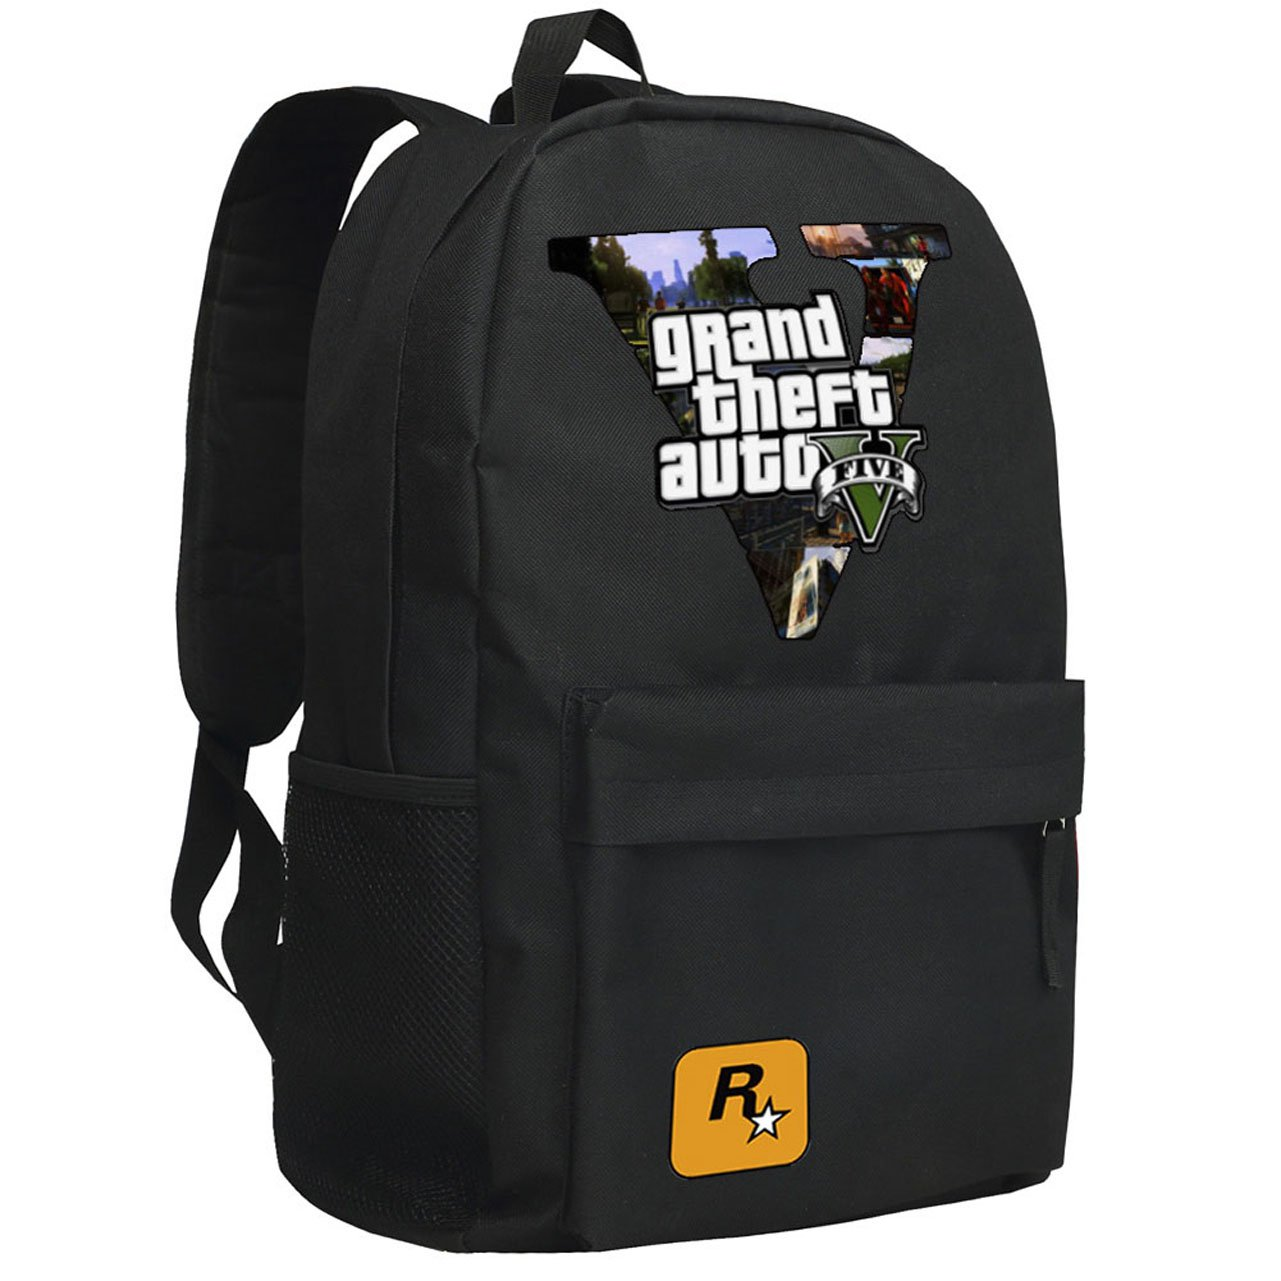 Grand Theft Game Auto 5 Bag Cool GTA5 Black Sports Style A Backpack